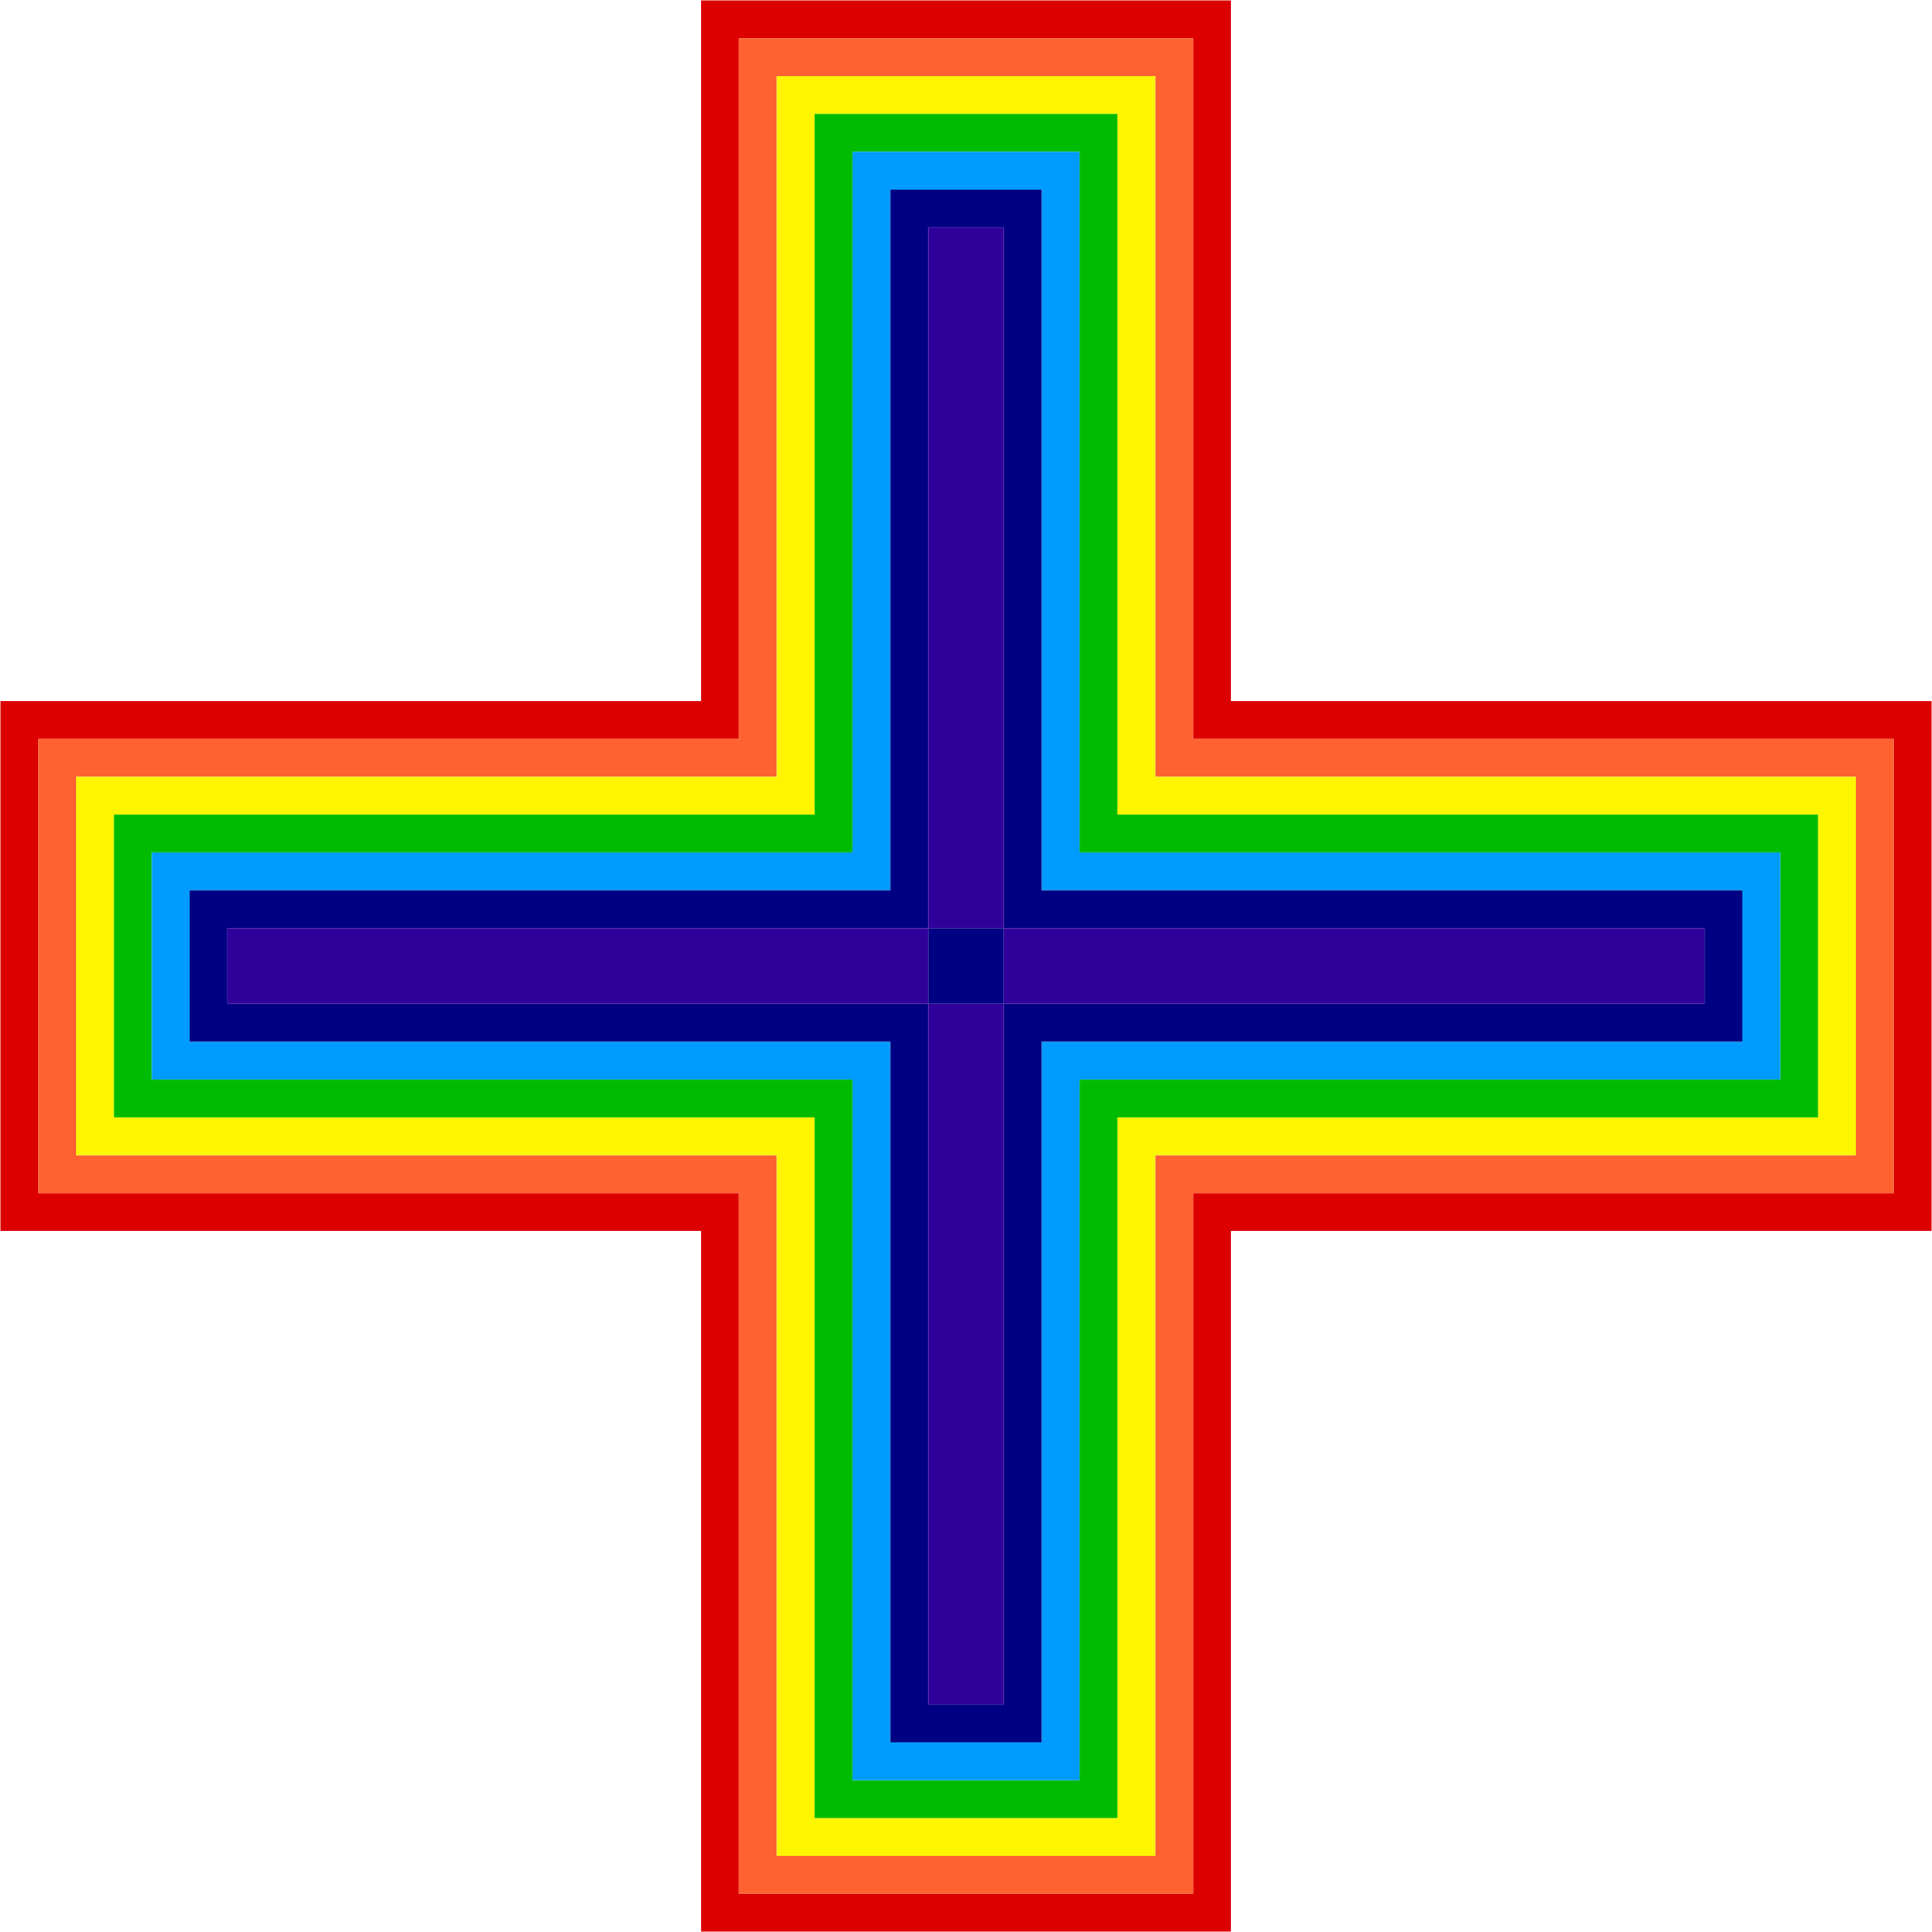 Rainbow icons png free. Clipart cross blue